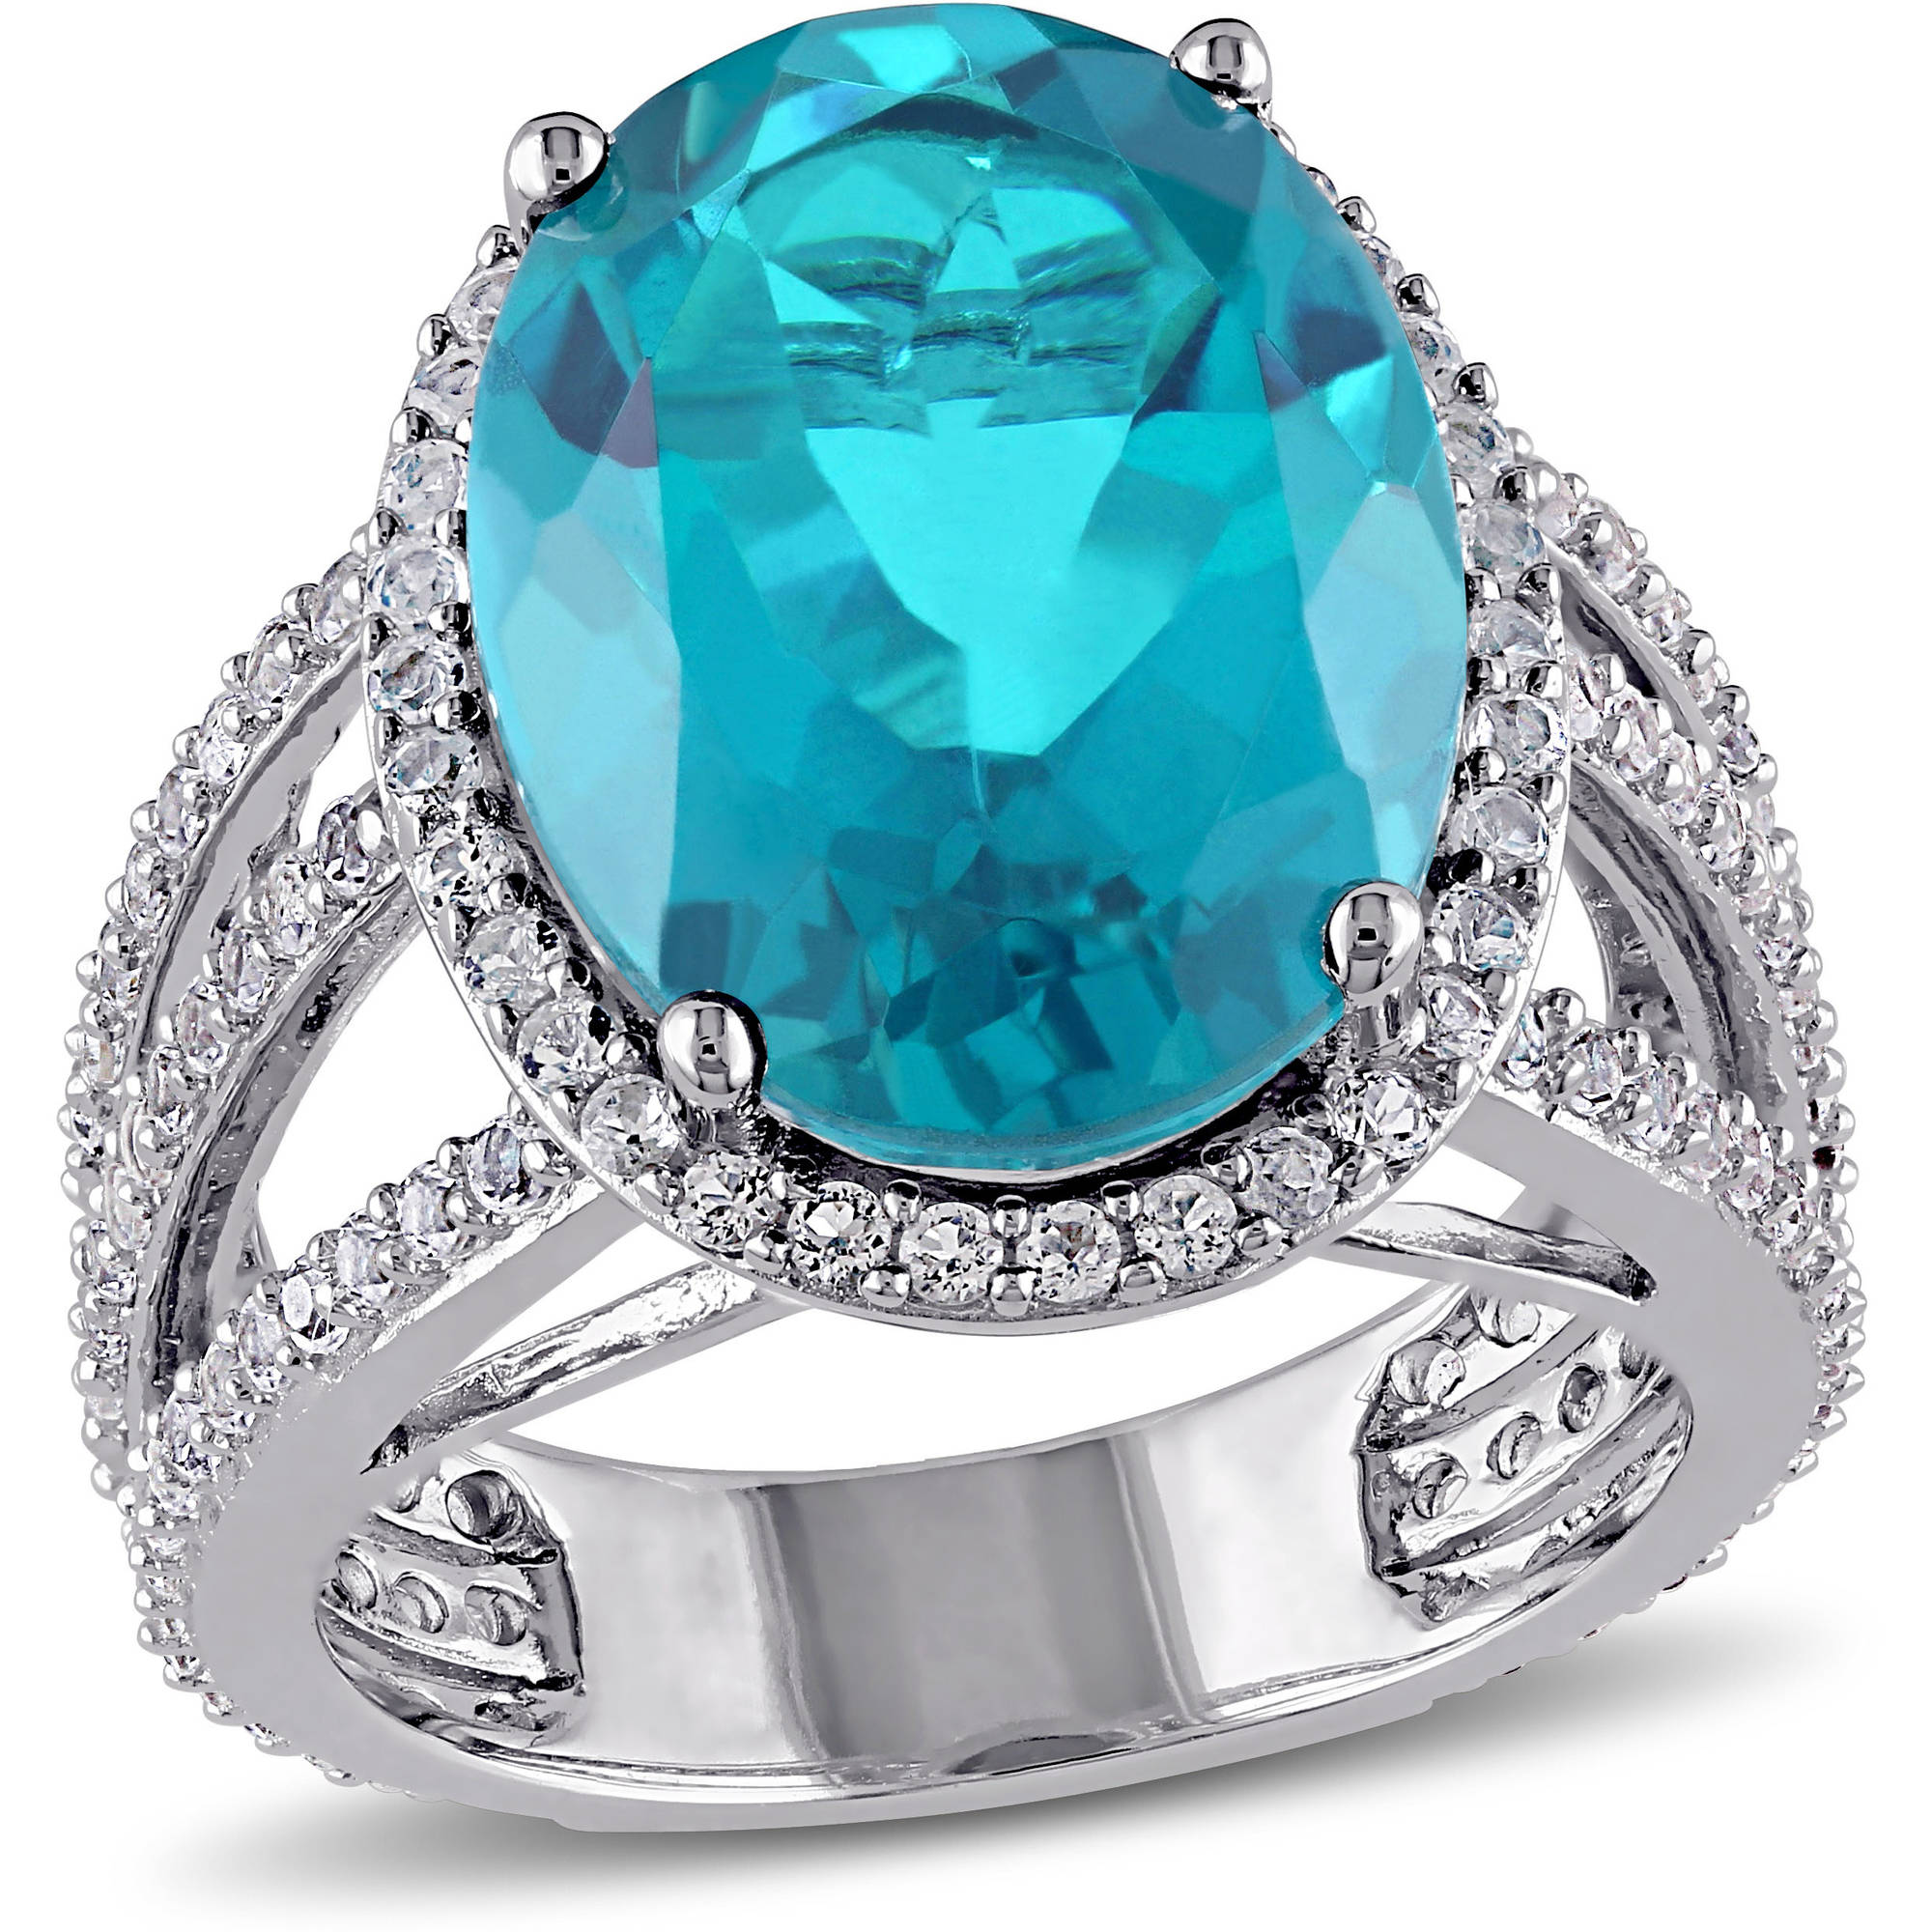 9-3/5 Carat T.G.W. Paraiba, Quartz and White Topaz Sterling Silver Halo Cocktail Ring